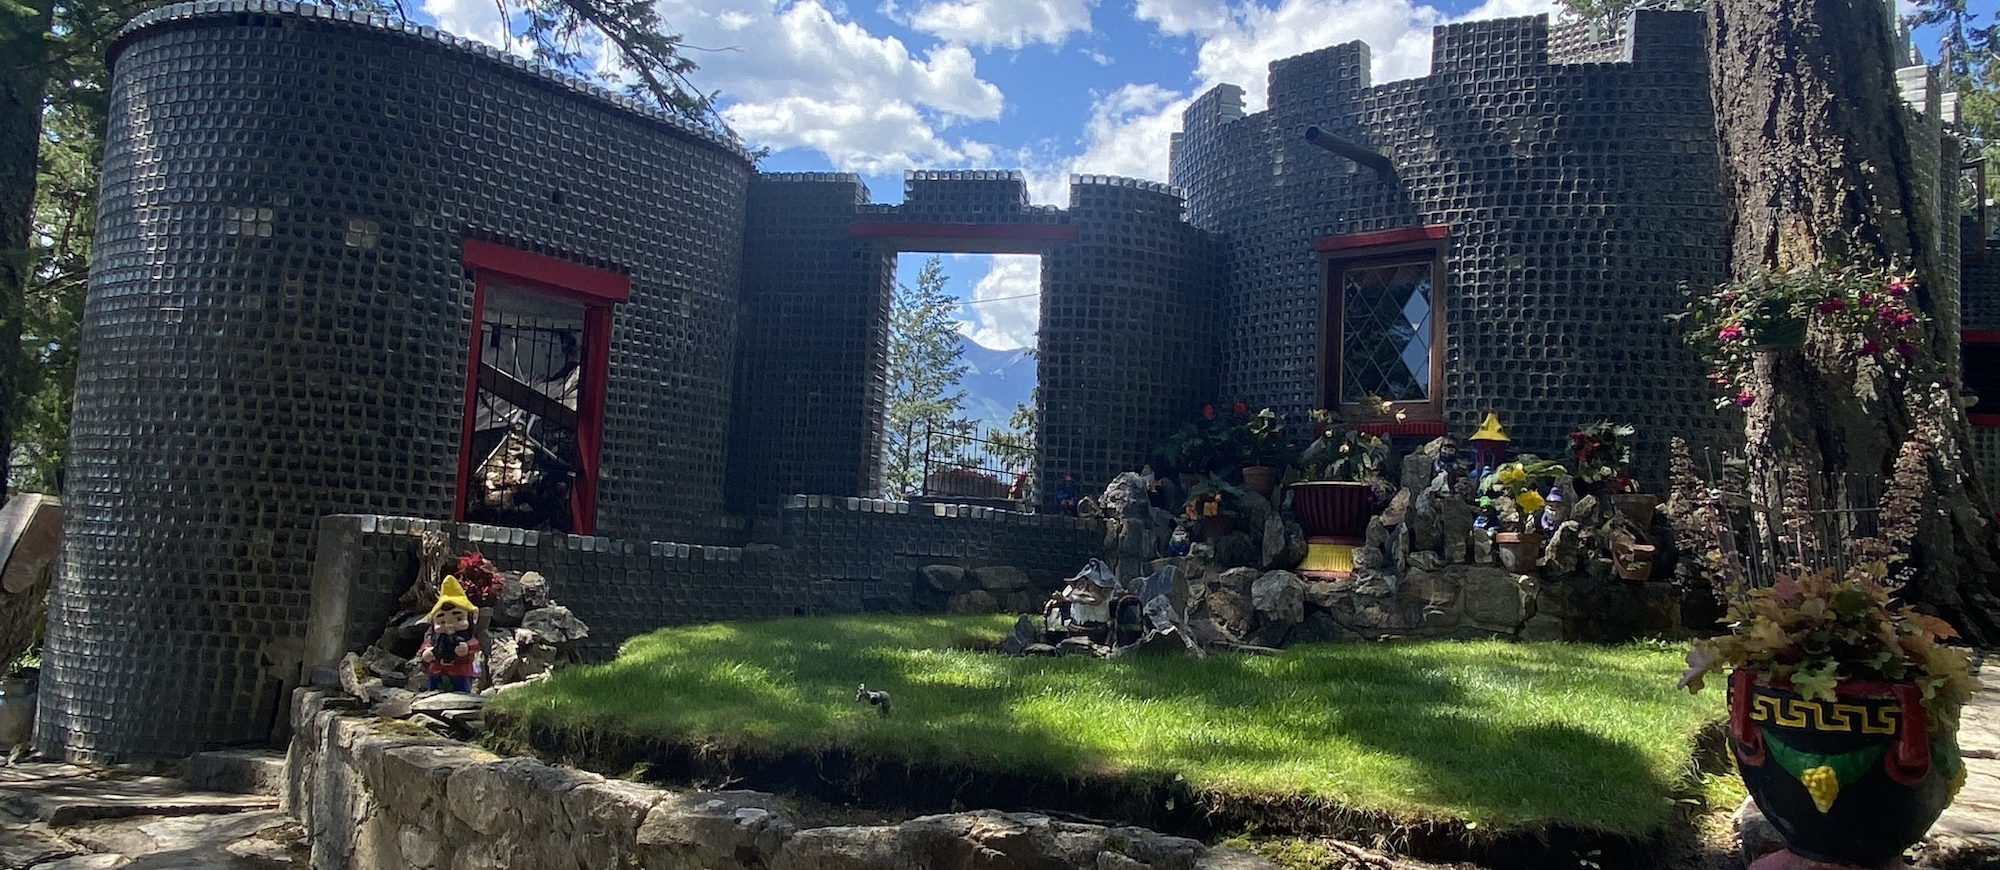 A castle-like house made out of glass bottles with green grass and lawn gnomes around it.